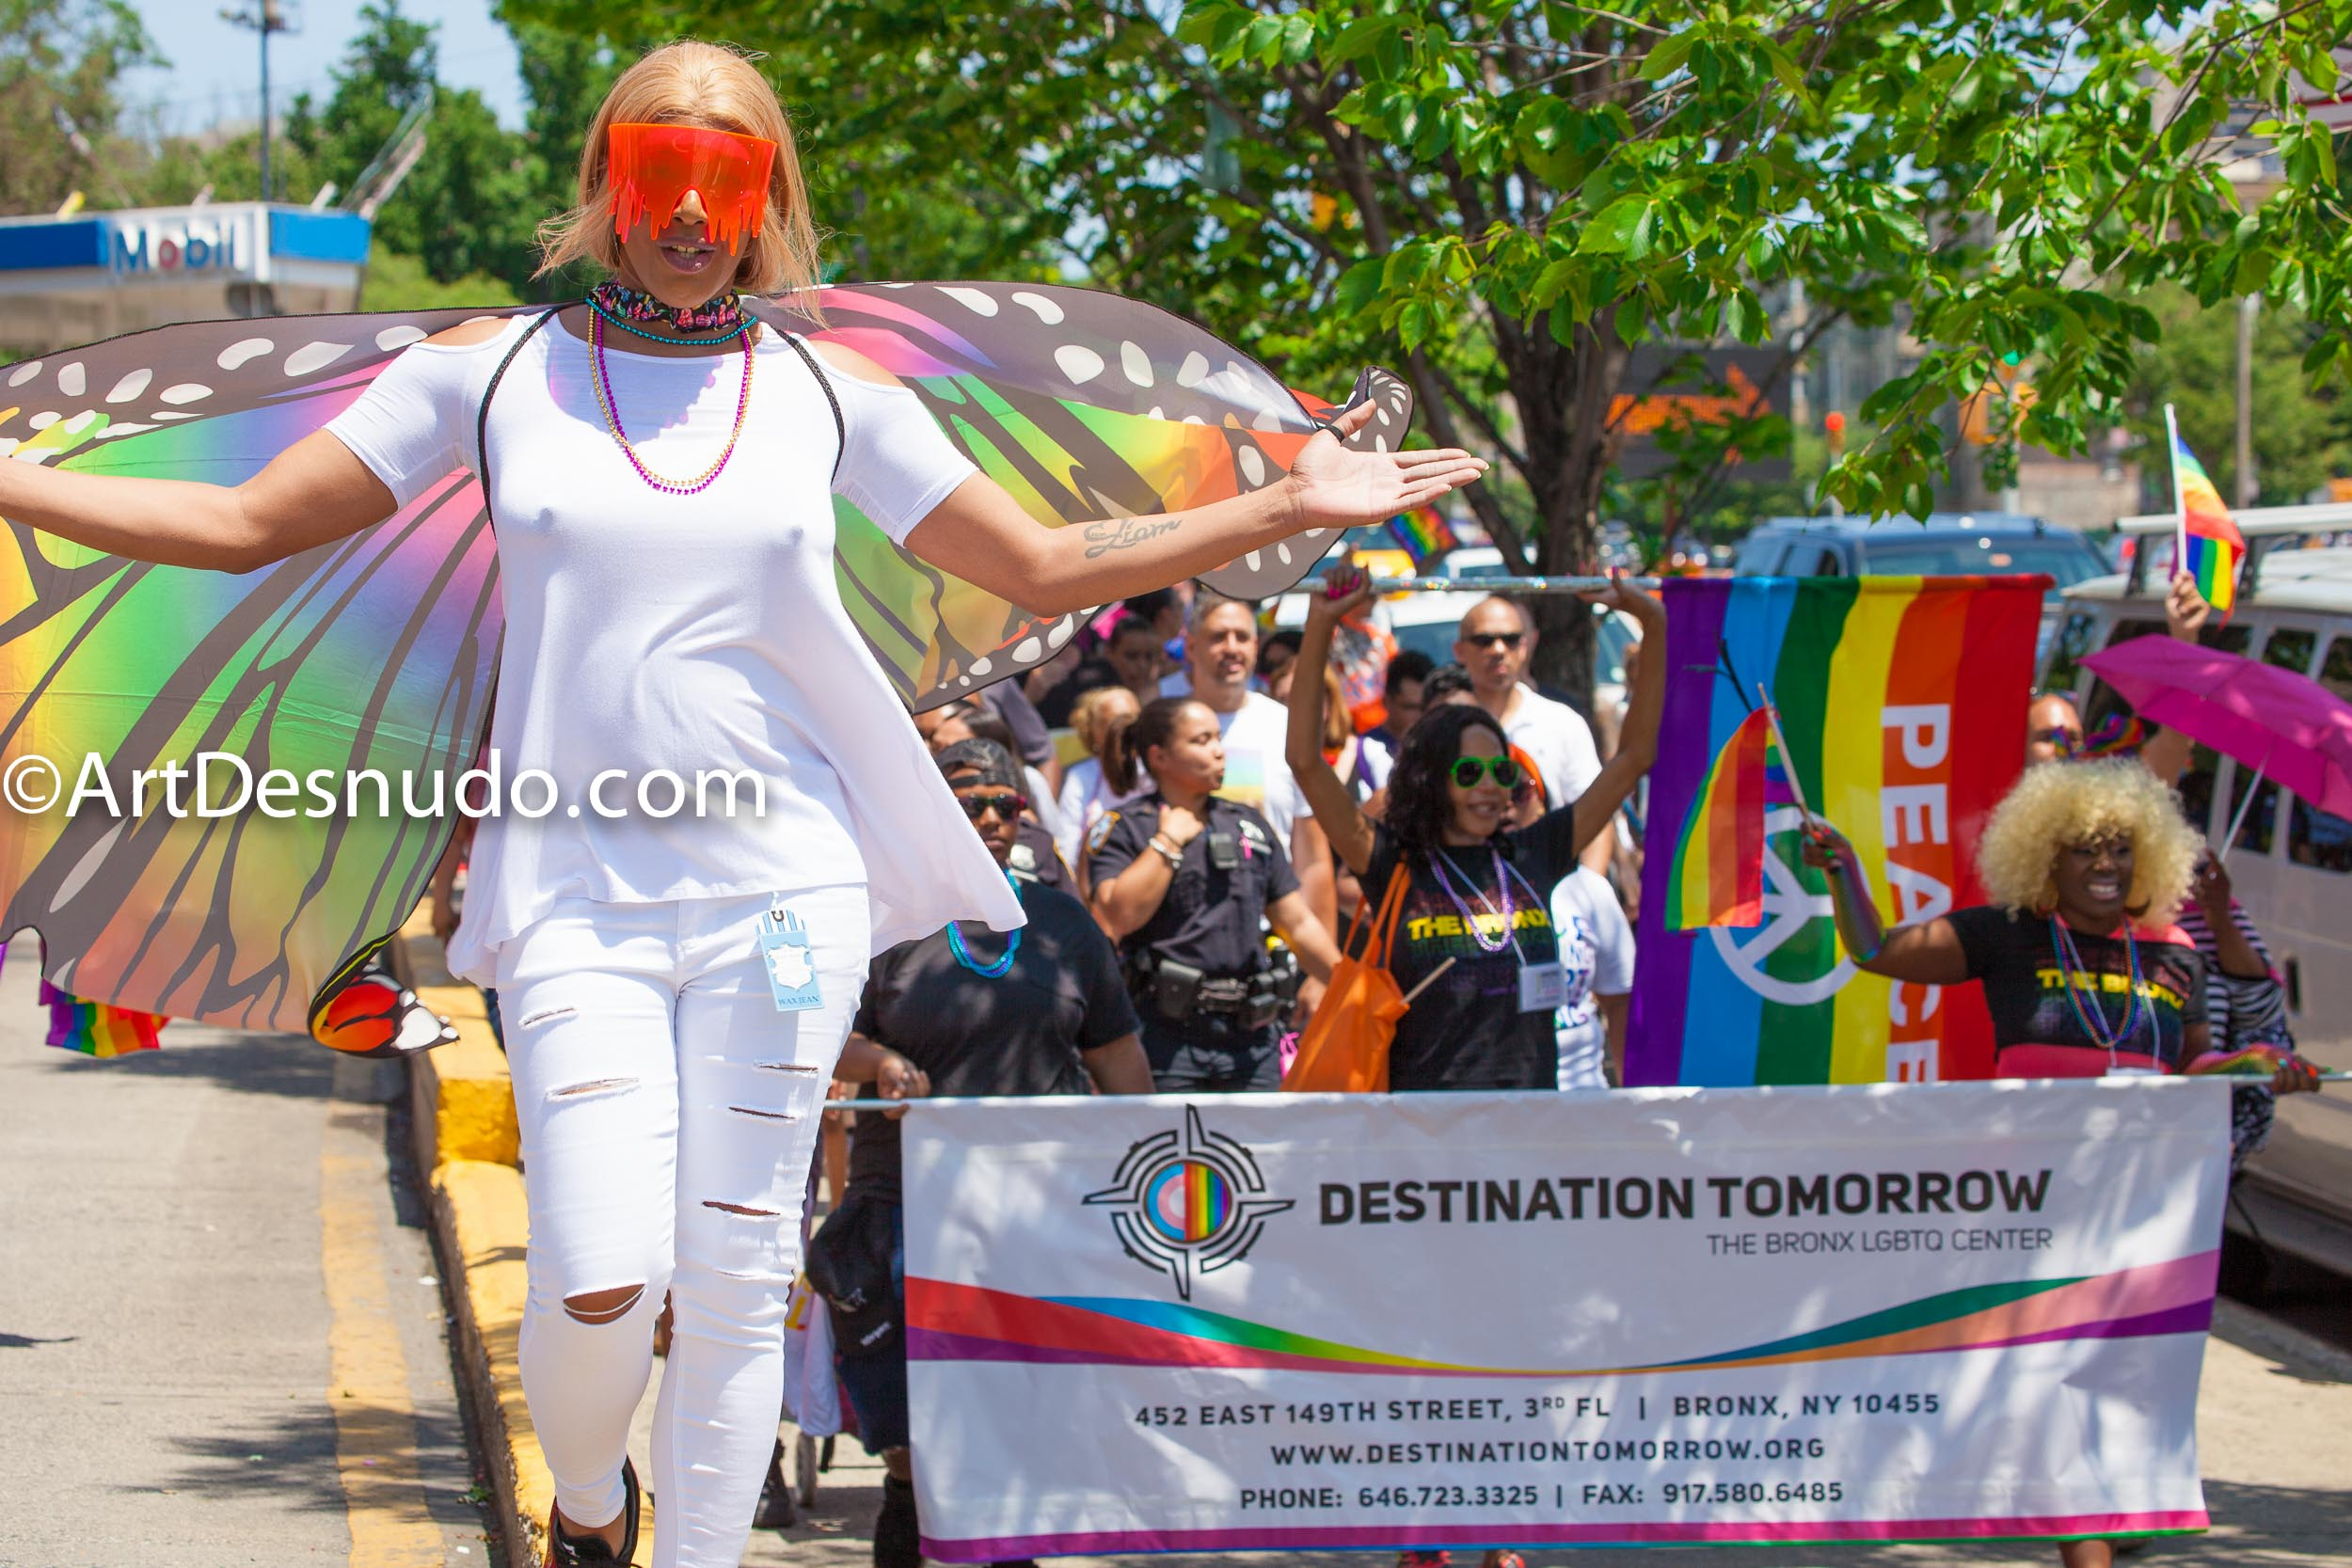 "New York City – The 1 Bronx World Pride Rally, March and Festival was on Sunday, June 23, 2019. People celebrated Bronx World Pride, Pride Month and the 50th anniversary of the Stonewall Rebellion. Organizers said: ""The 1 Bronx World Pride promotes inclusion, community, and dialogue and works toward a future without discrimination where all people have equal rights under the law. We do this by producing Pride events that inspire, educate, and celebrate our diverse Bronx community. The 1 Bronx World Pride Rally, March and Festival brings together over 20,000 Bronxites working toward a more inclusive future for our community."""